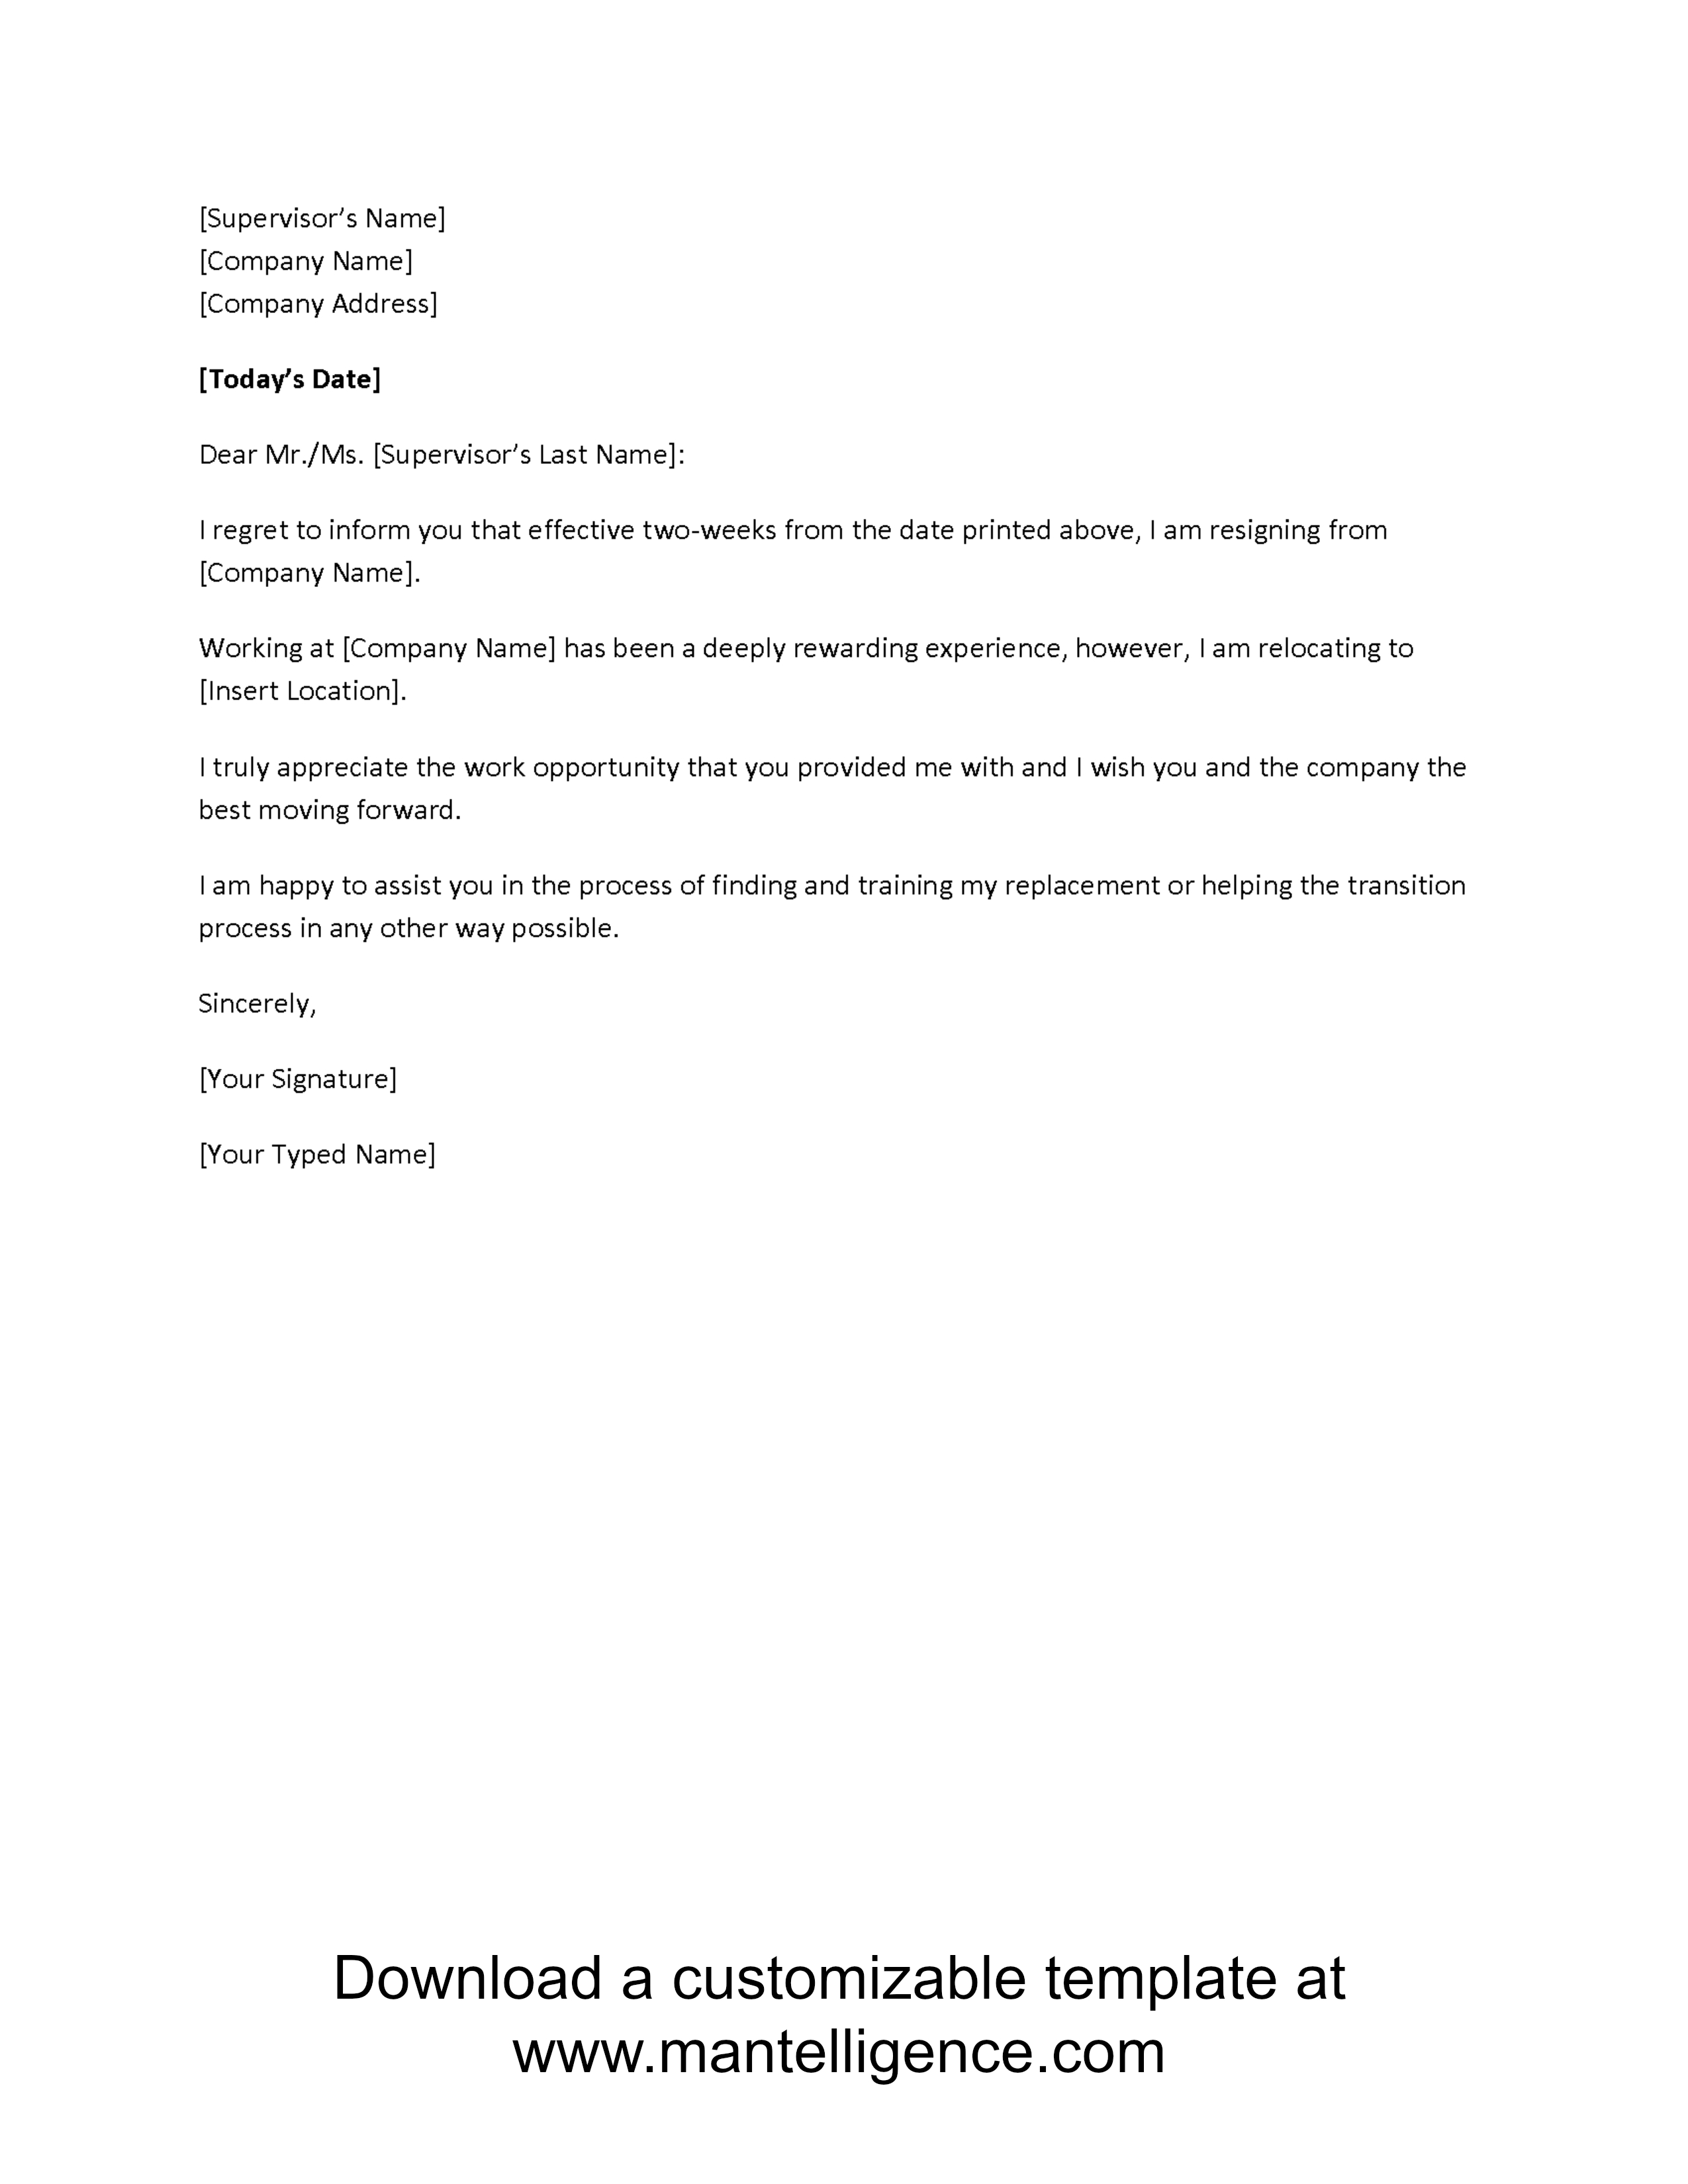 Workers Compensation Denial Letter Template - 3 Highly Professional Two Weeks Notice Letter Templates